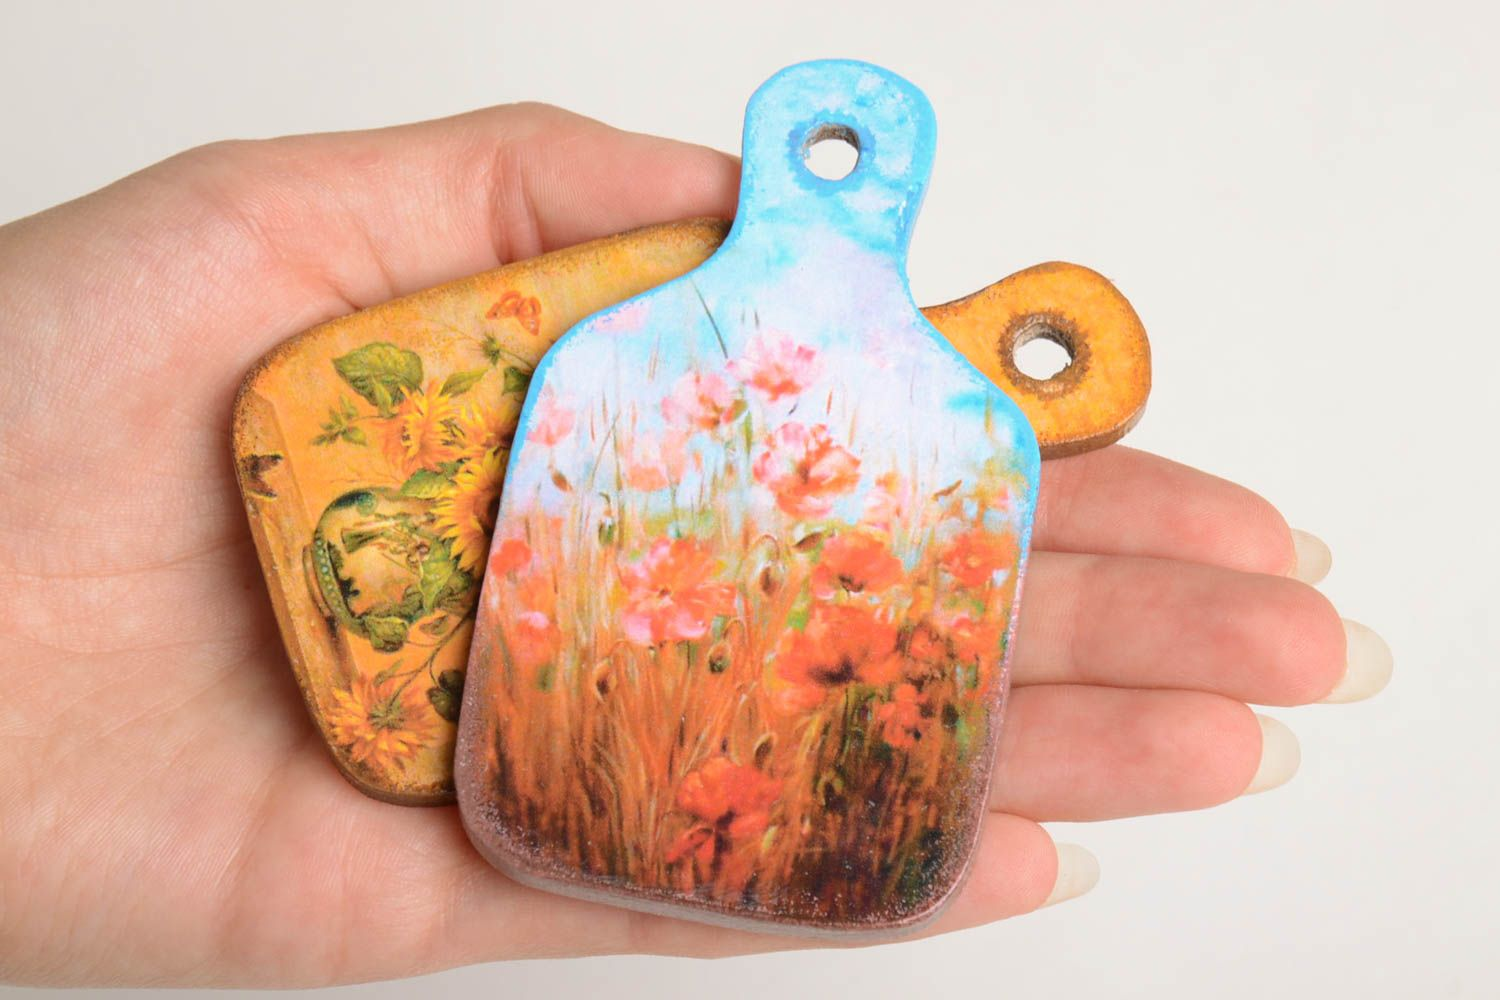 Handmade souvenir magnet fridge magnet 2 pieces small gifts decorative use only photo 4